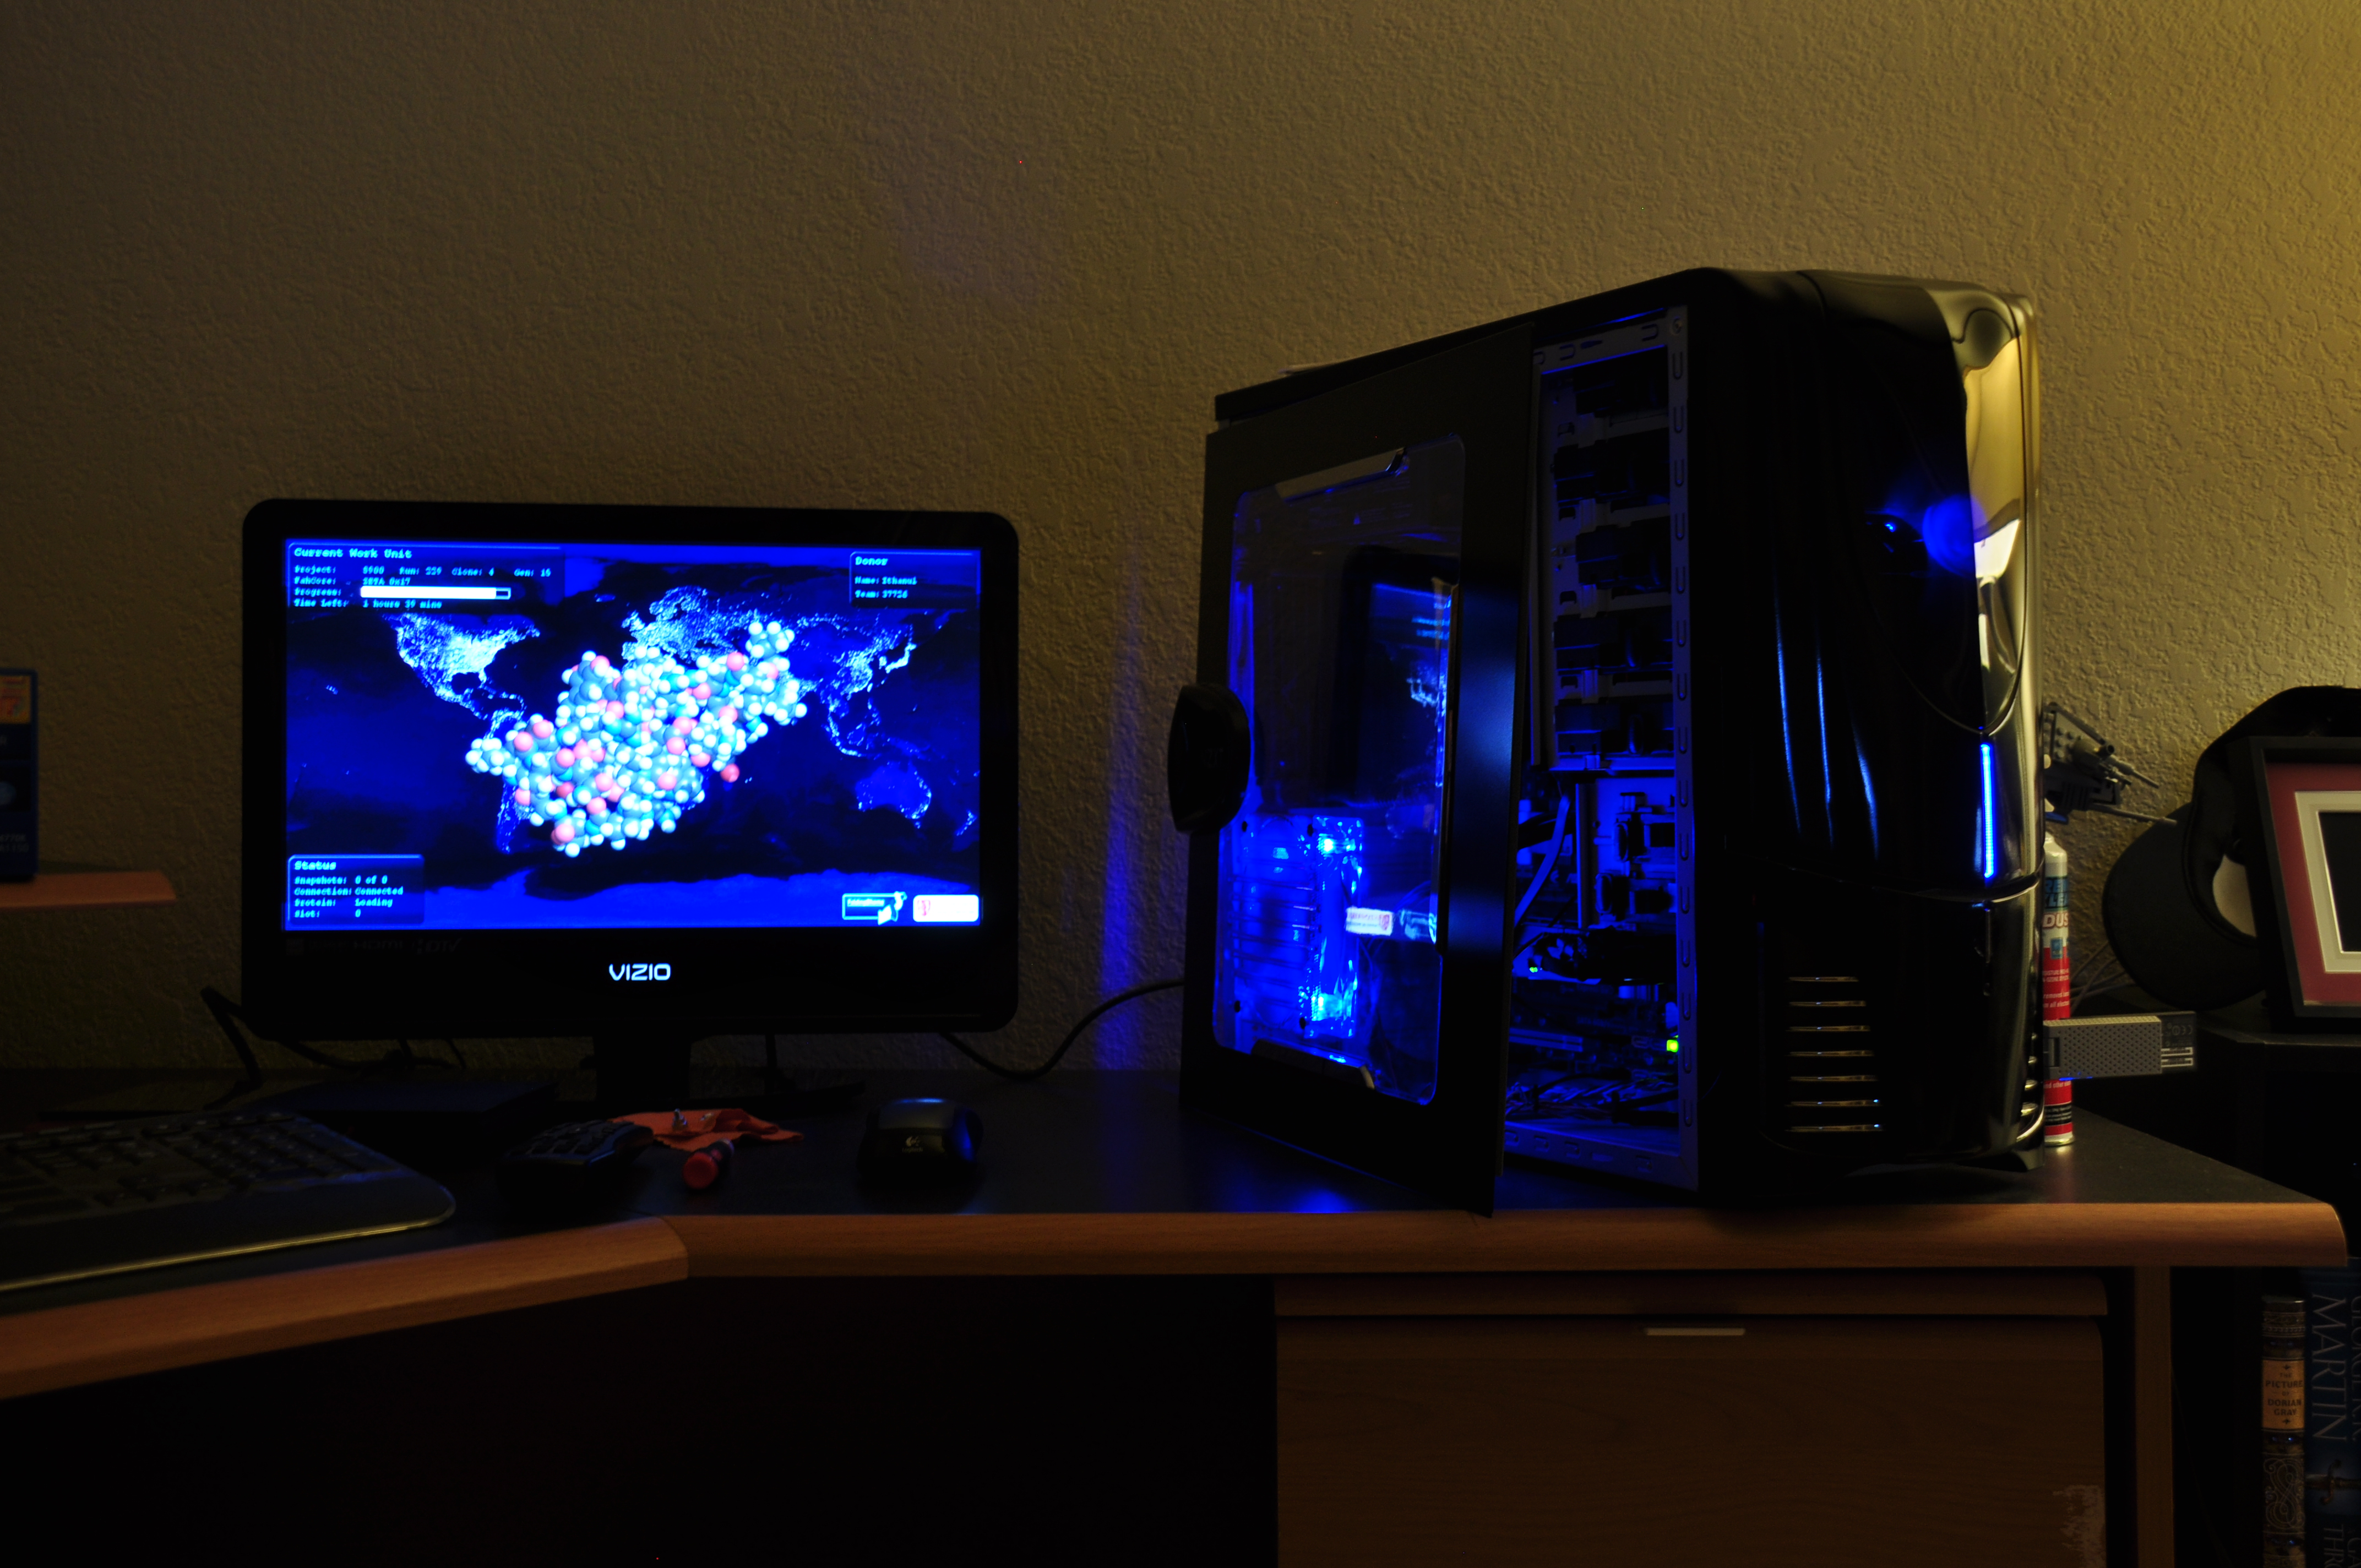 Black Dragon rig chomping away on WUs, open the side since the 590 was getting toasty. Soon to throw the new 7970 into it after 590 gets done with its current WUs.